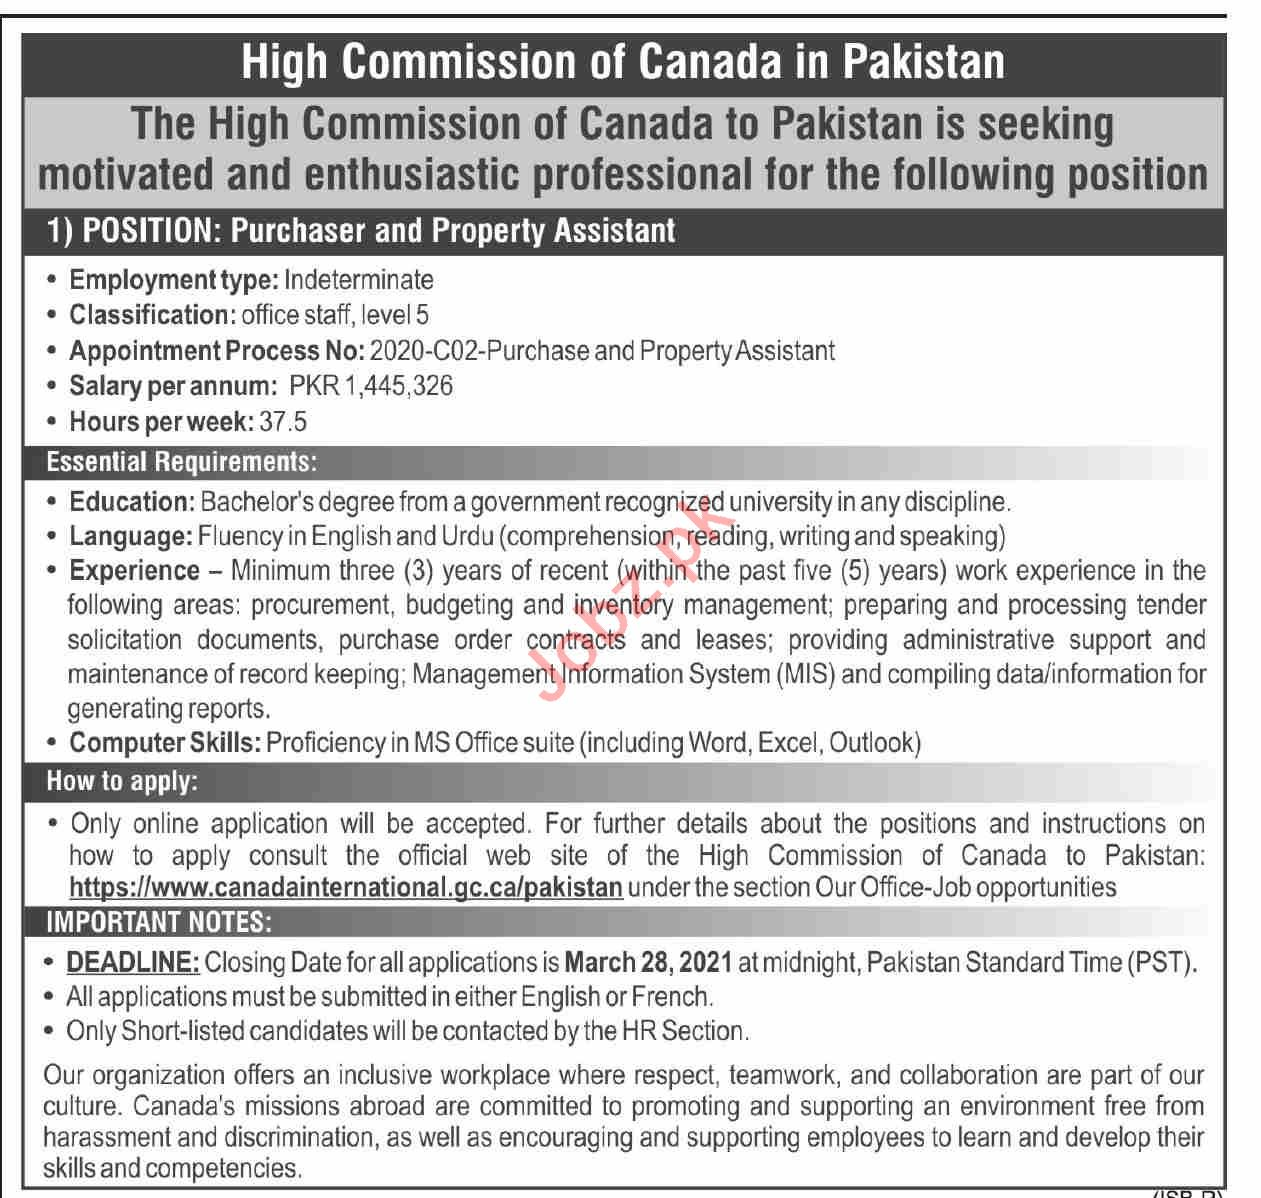 High Commission of Canada in Pakistan Jobs 2021